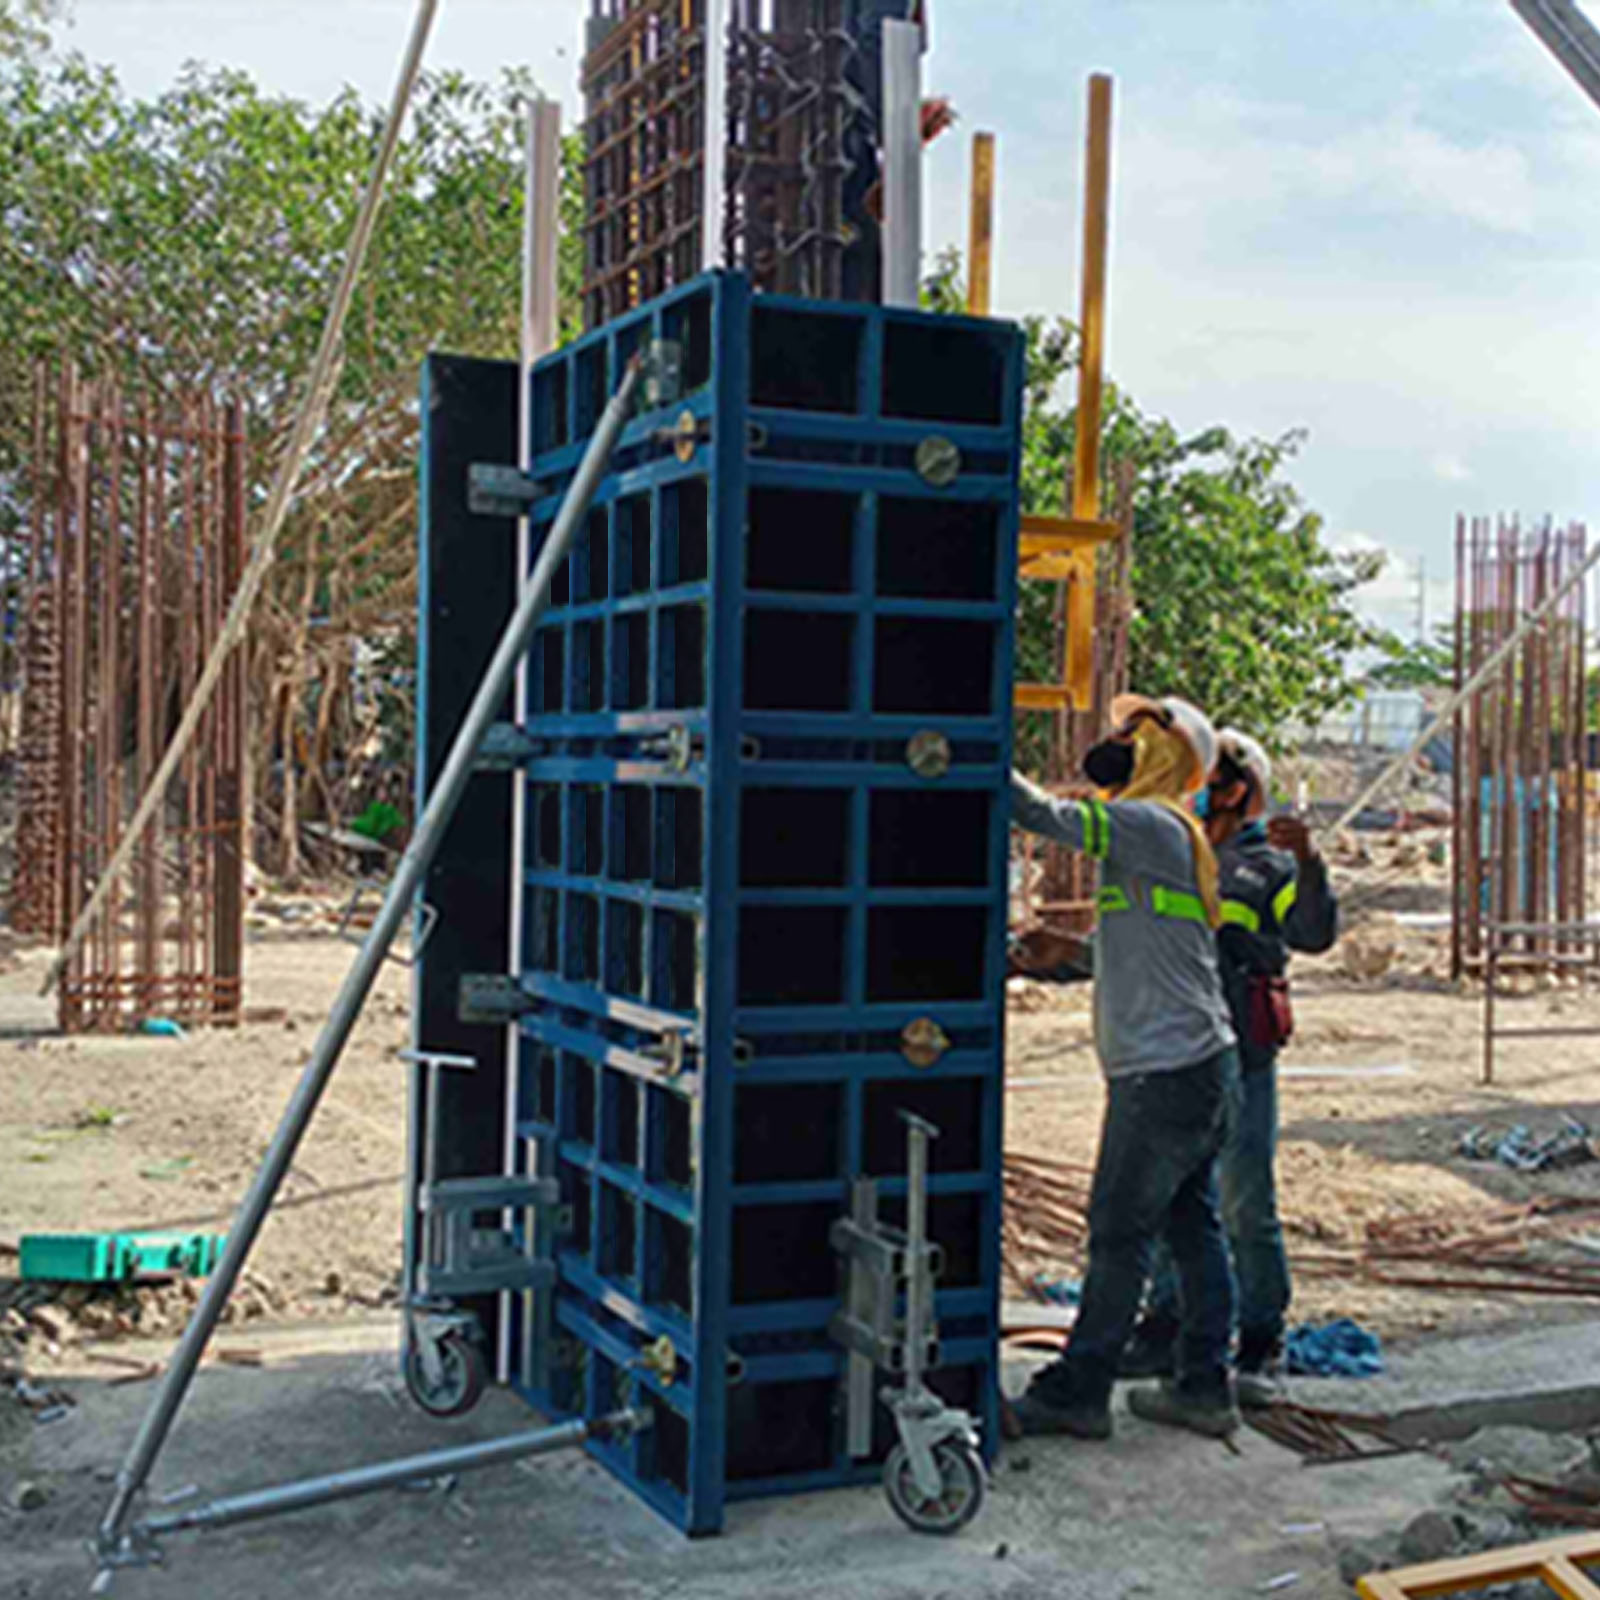 Project Description: Bloom Residences Location: Paranaque City Product / Equipment Used: B-Form Panel System